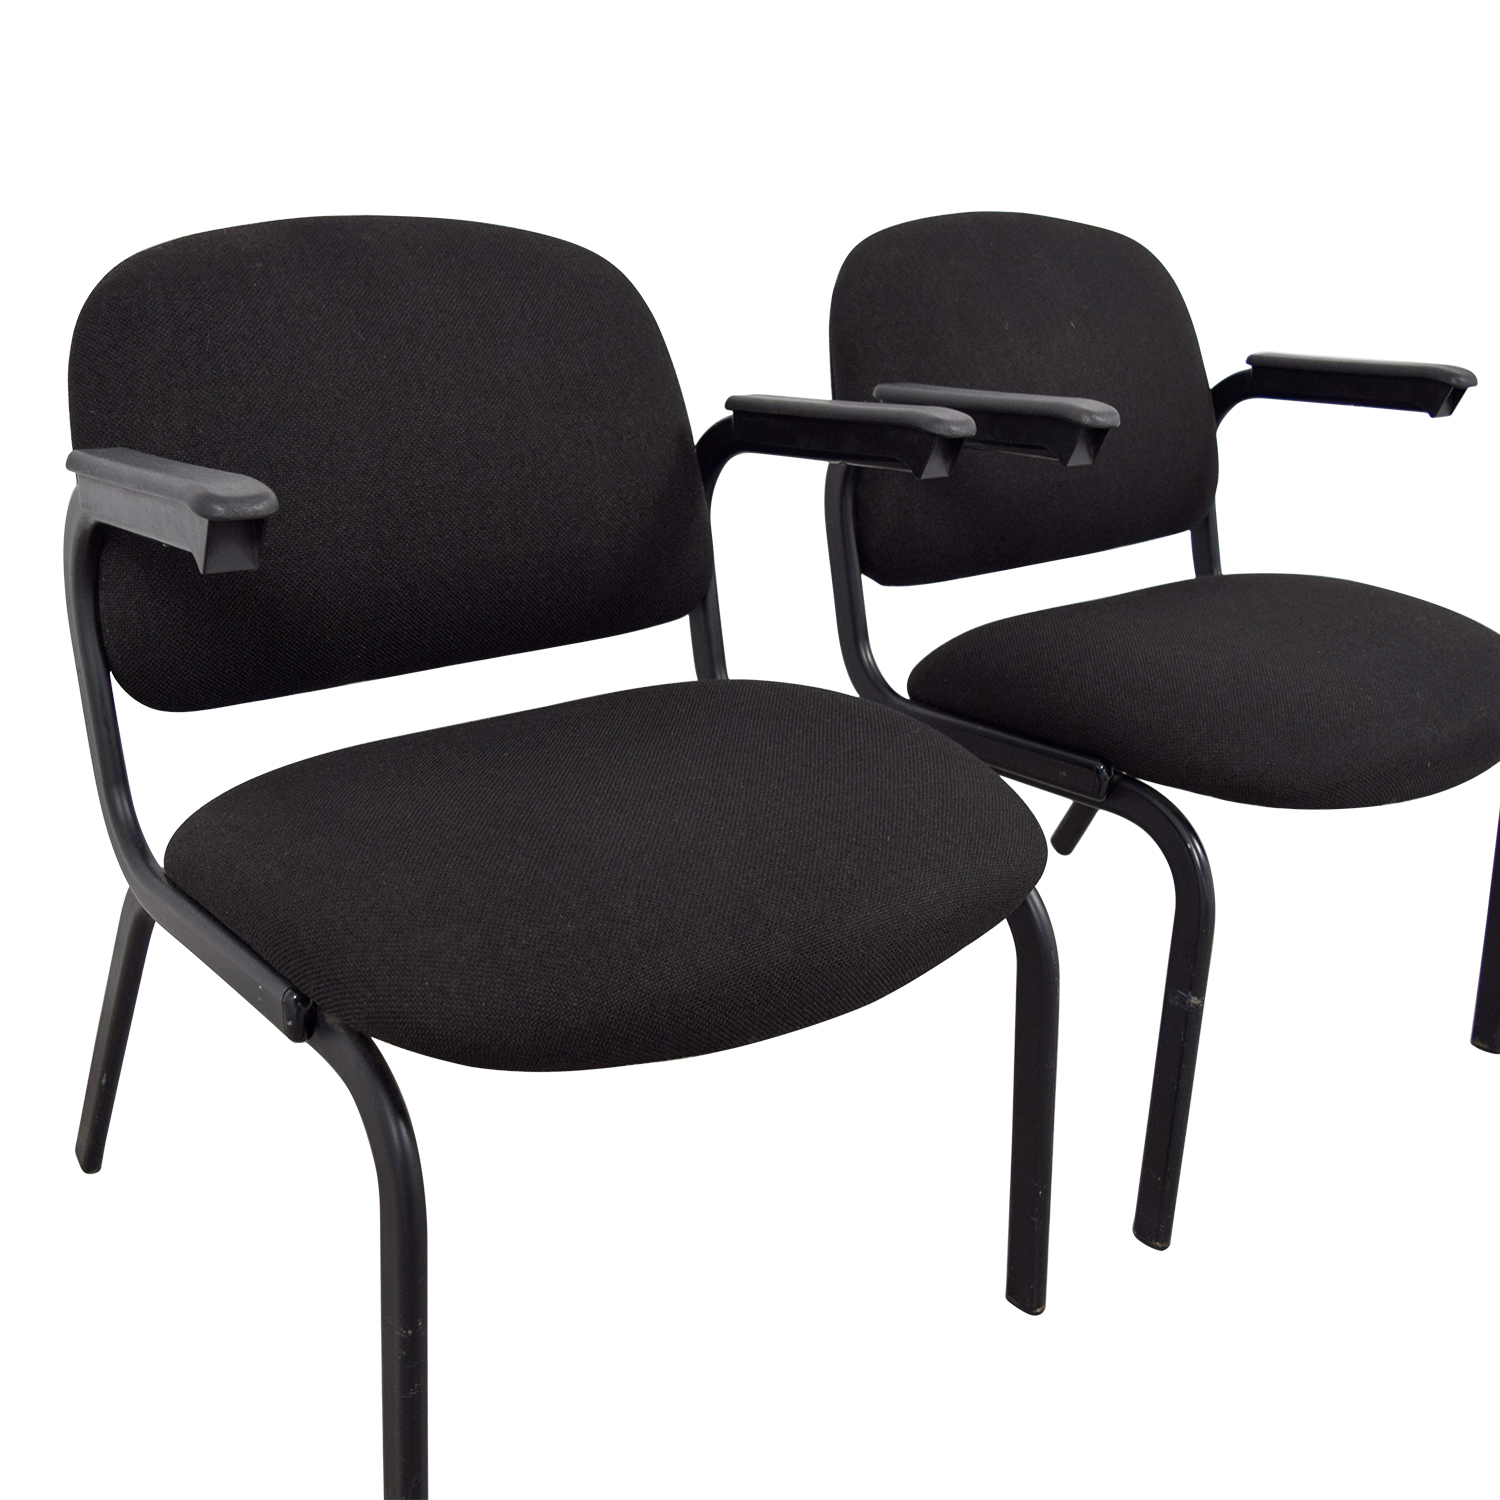 United United Black Fabric Chairs used